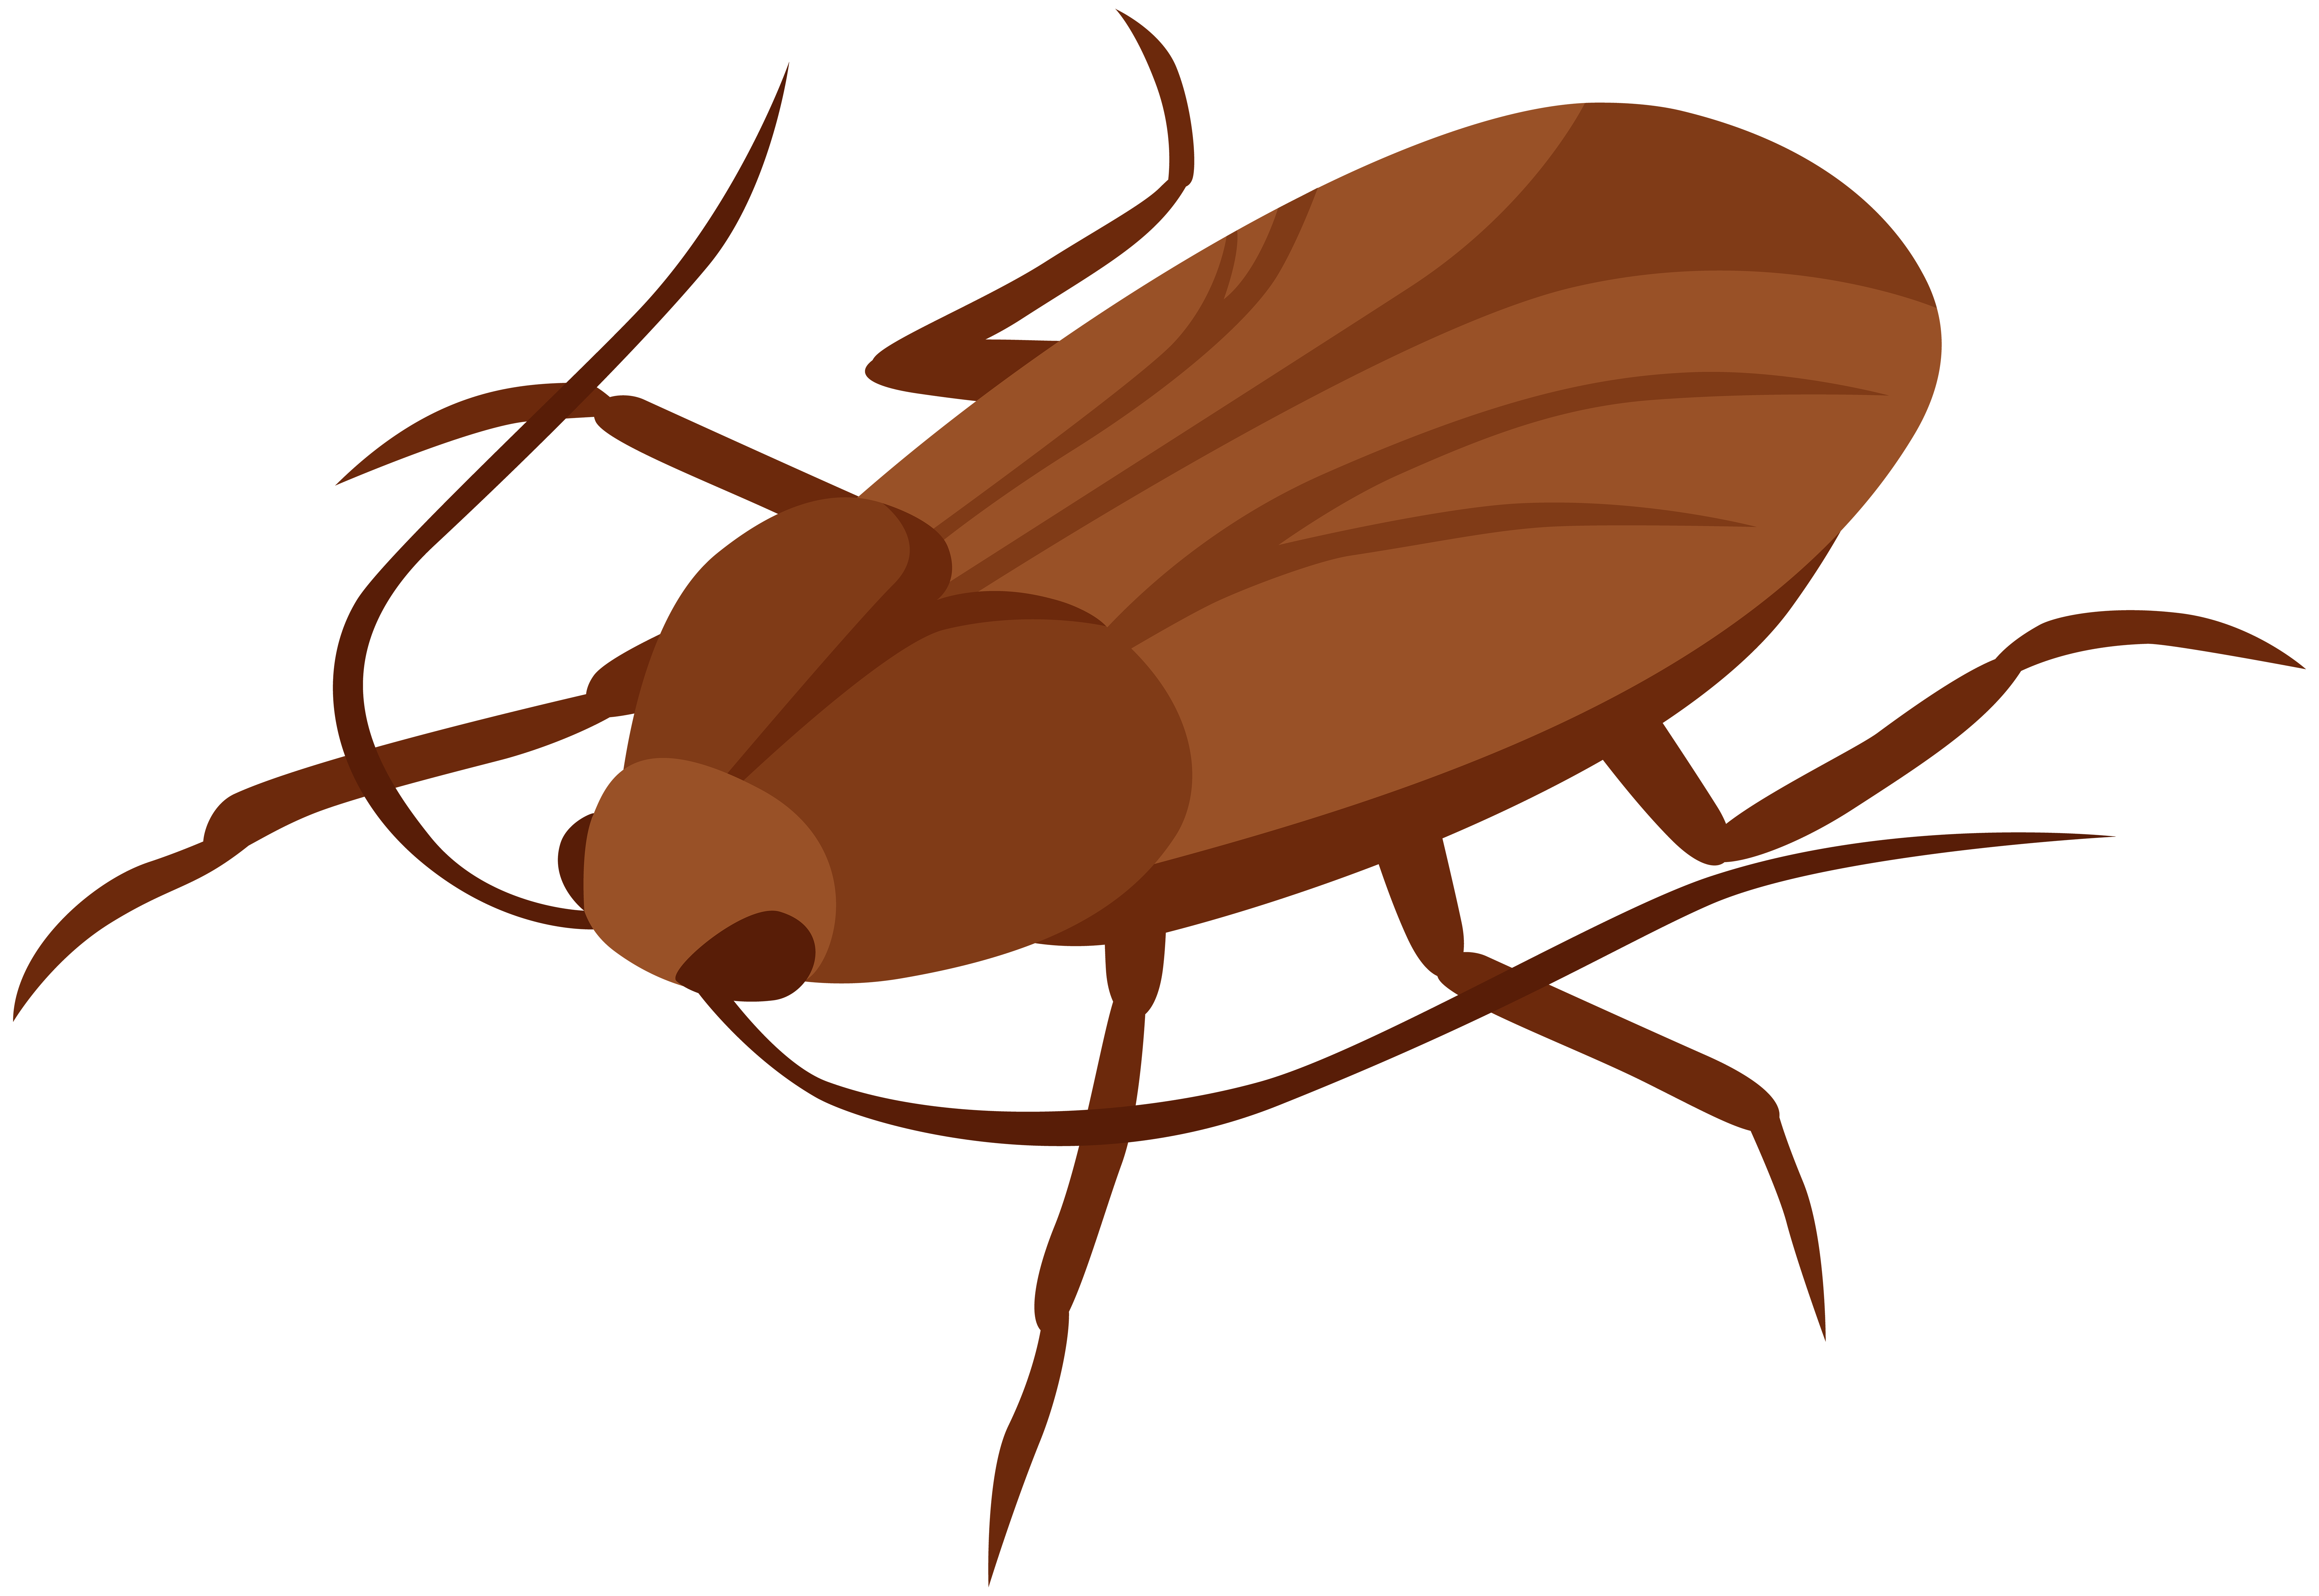 Cockroach images clipart vector free library Cockroach PNG Clip Art - Best WEB Clipart vector free library